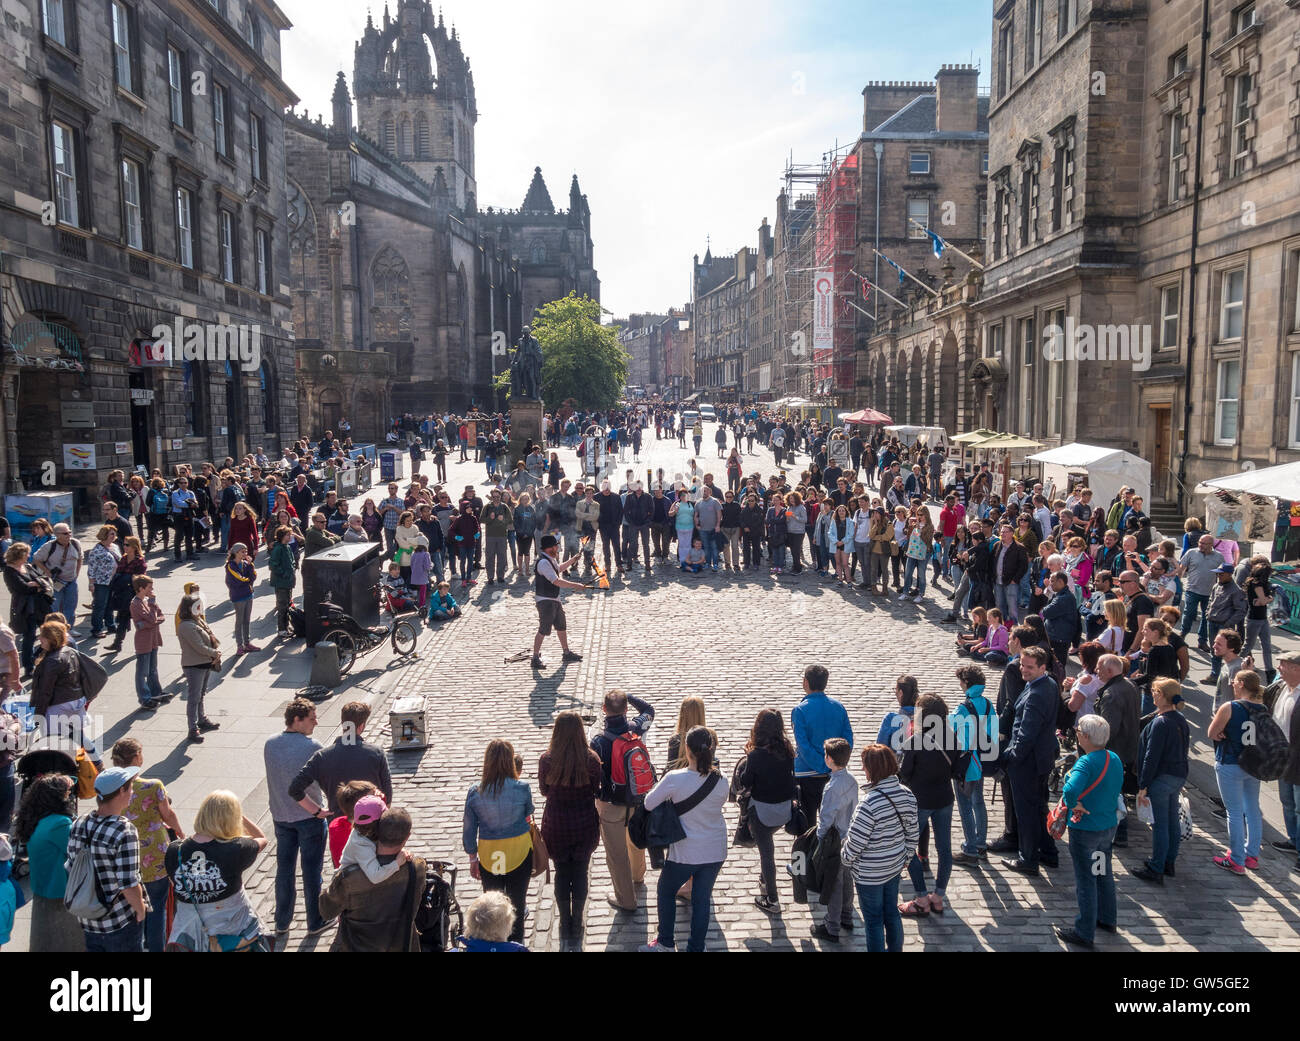 Edinburgh Royal Mile. Edinburgh High Street with fire performer and a circle of visitors, tourists looking on. - Stock Image